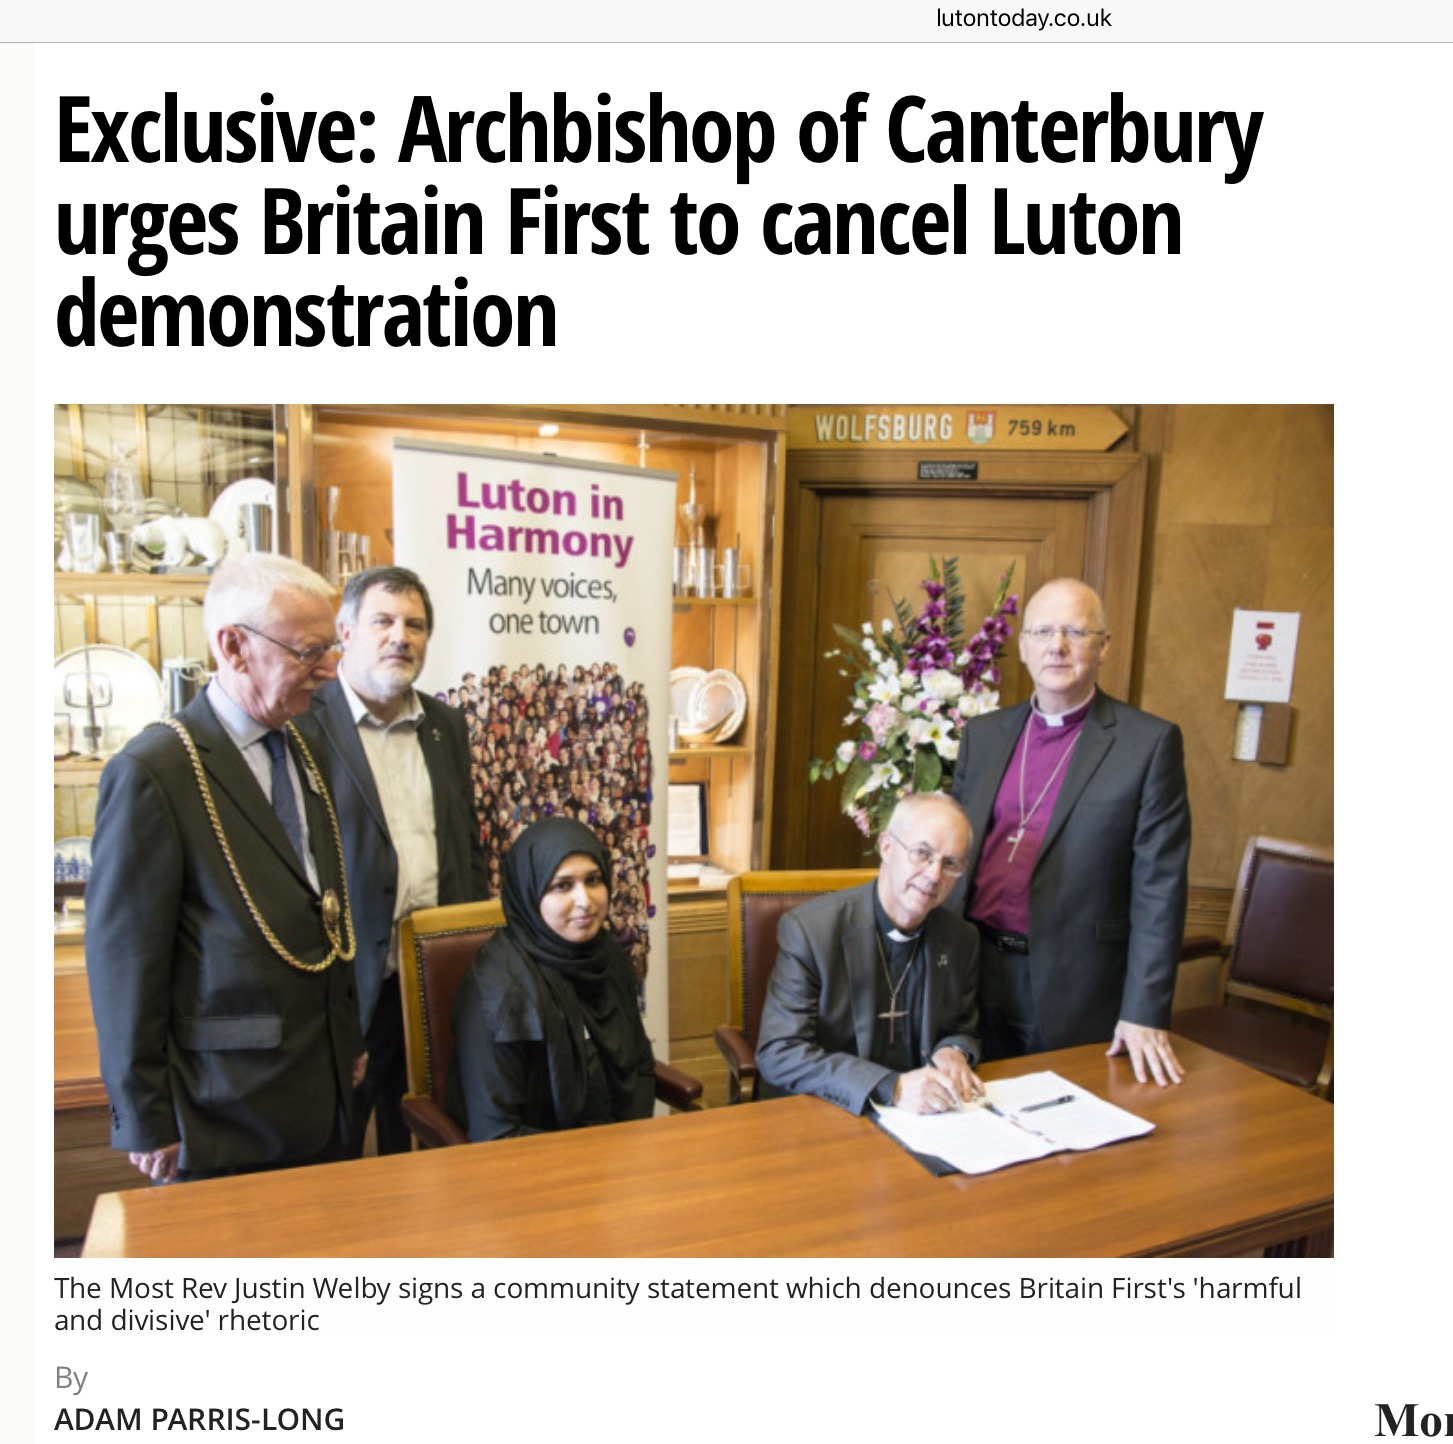 Yours truly with Rehana Faisal, Muslim community activist, ArchbishopmJustin, Luton Mayor Dave Taylor and Bishop Alan of St Albans.